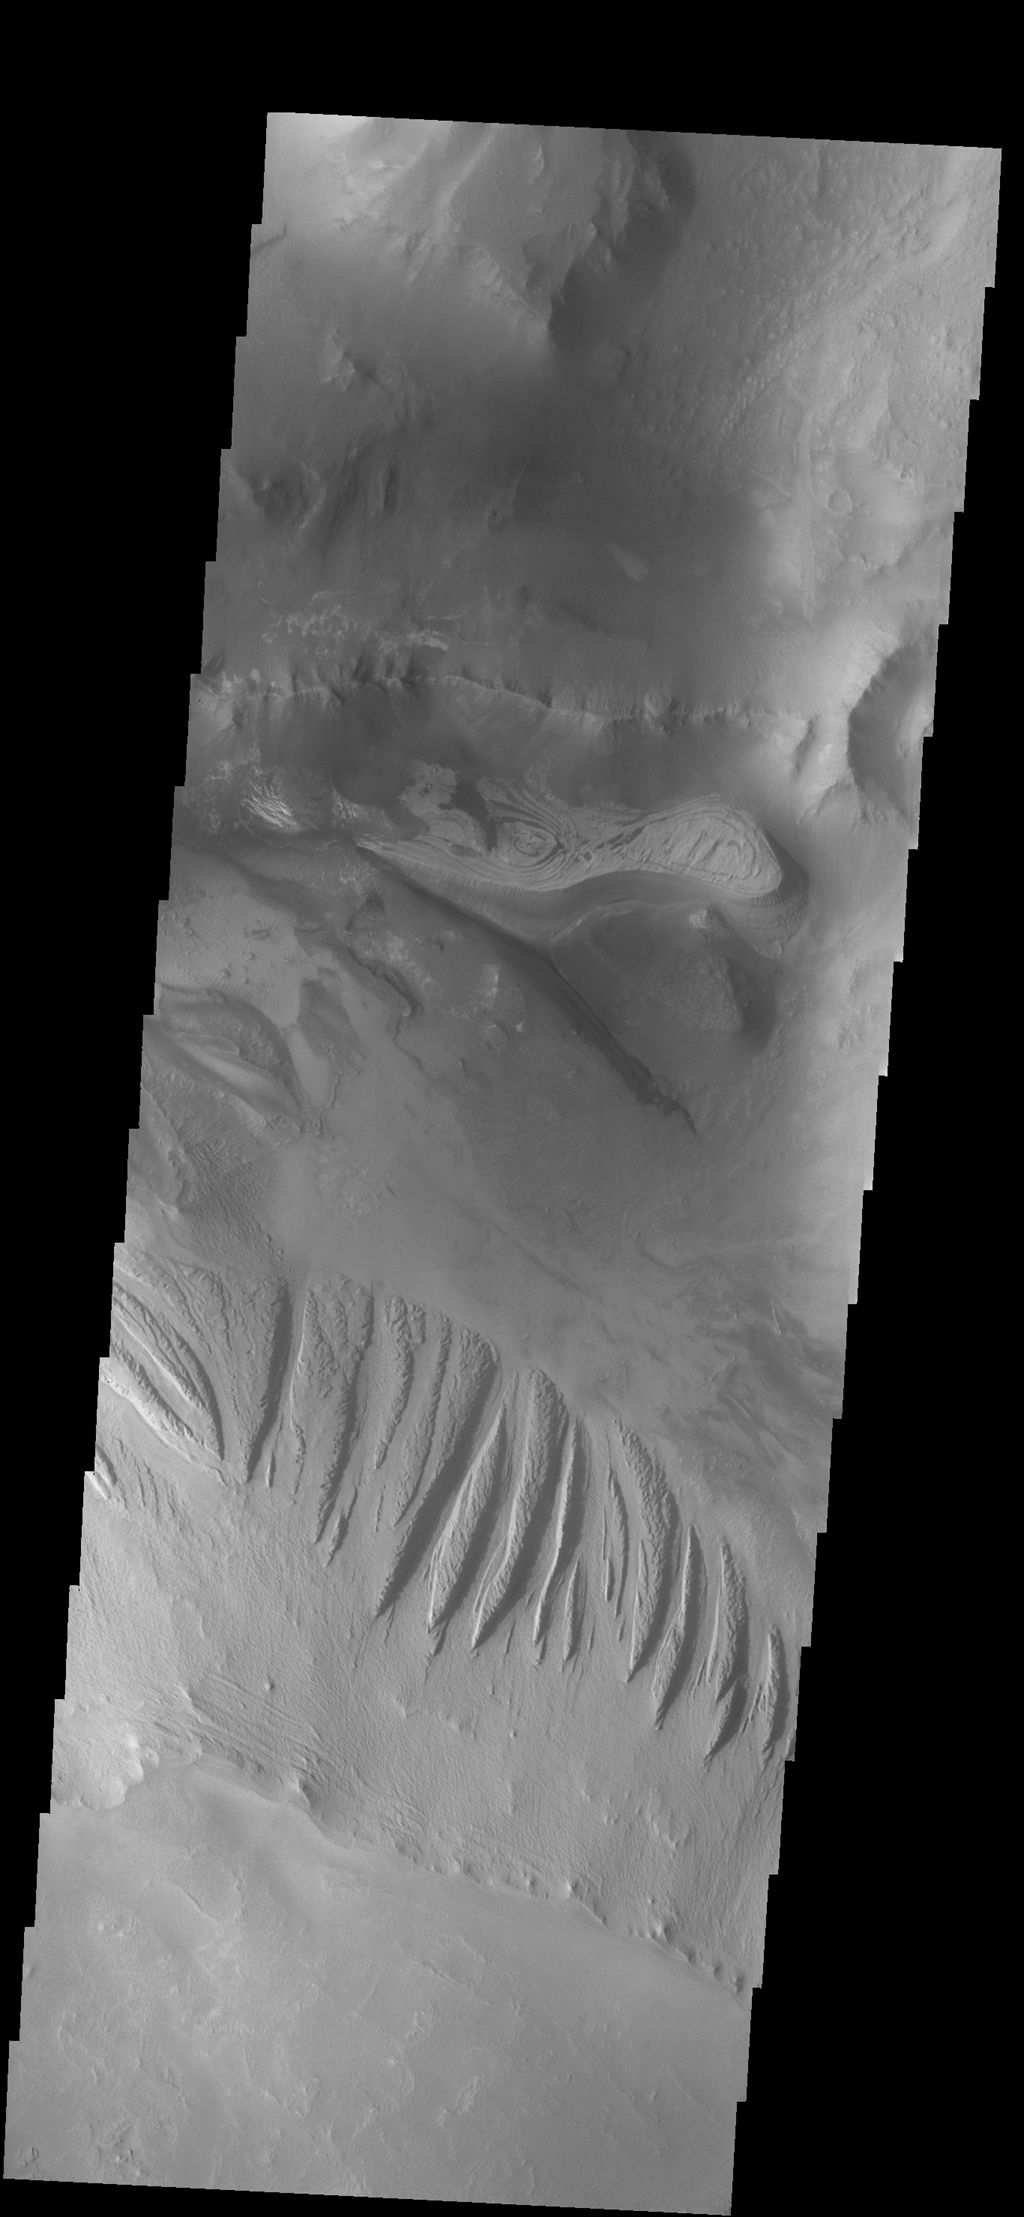 This image shows a portion of Candor Chasma as seen by NASA's 2001 Mars Odyssey spacecraft.